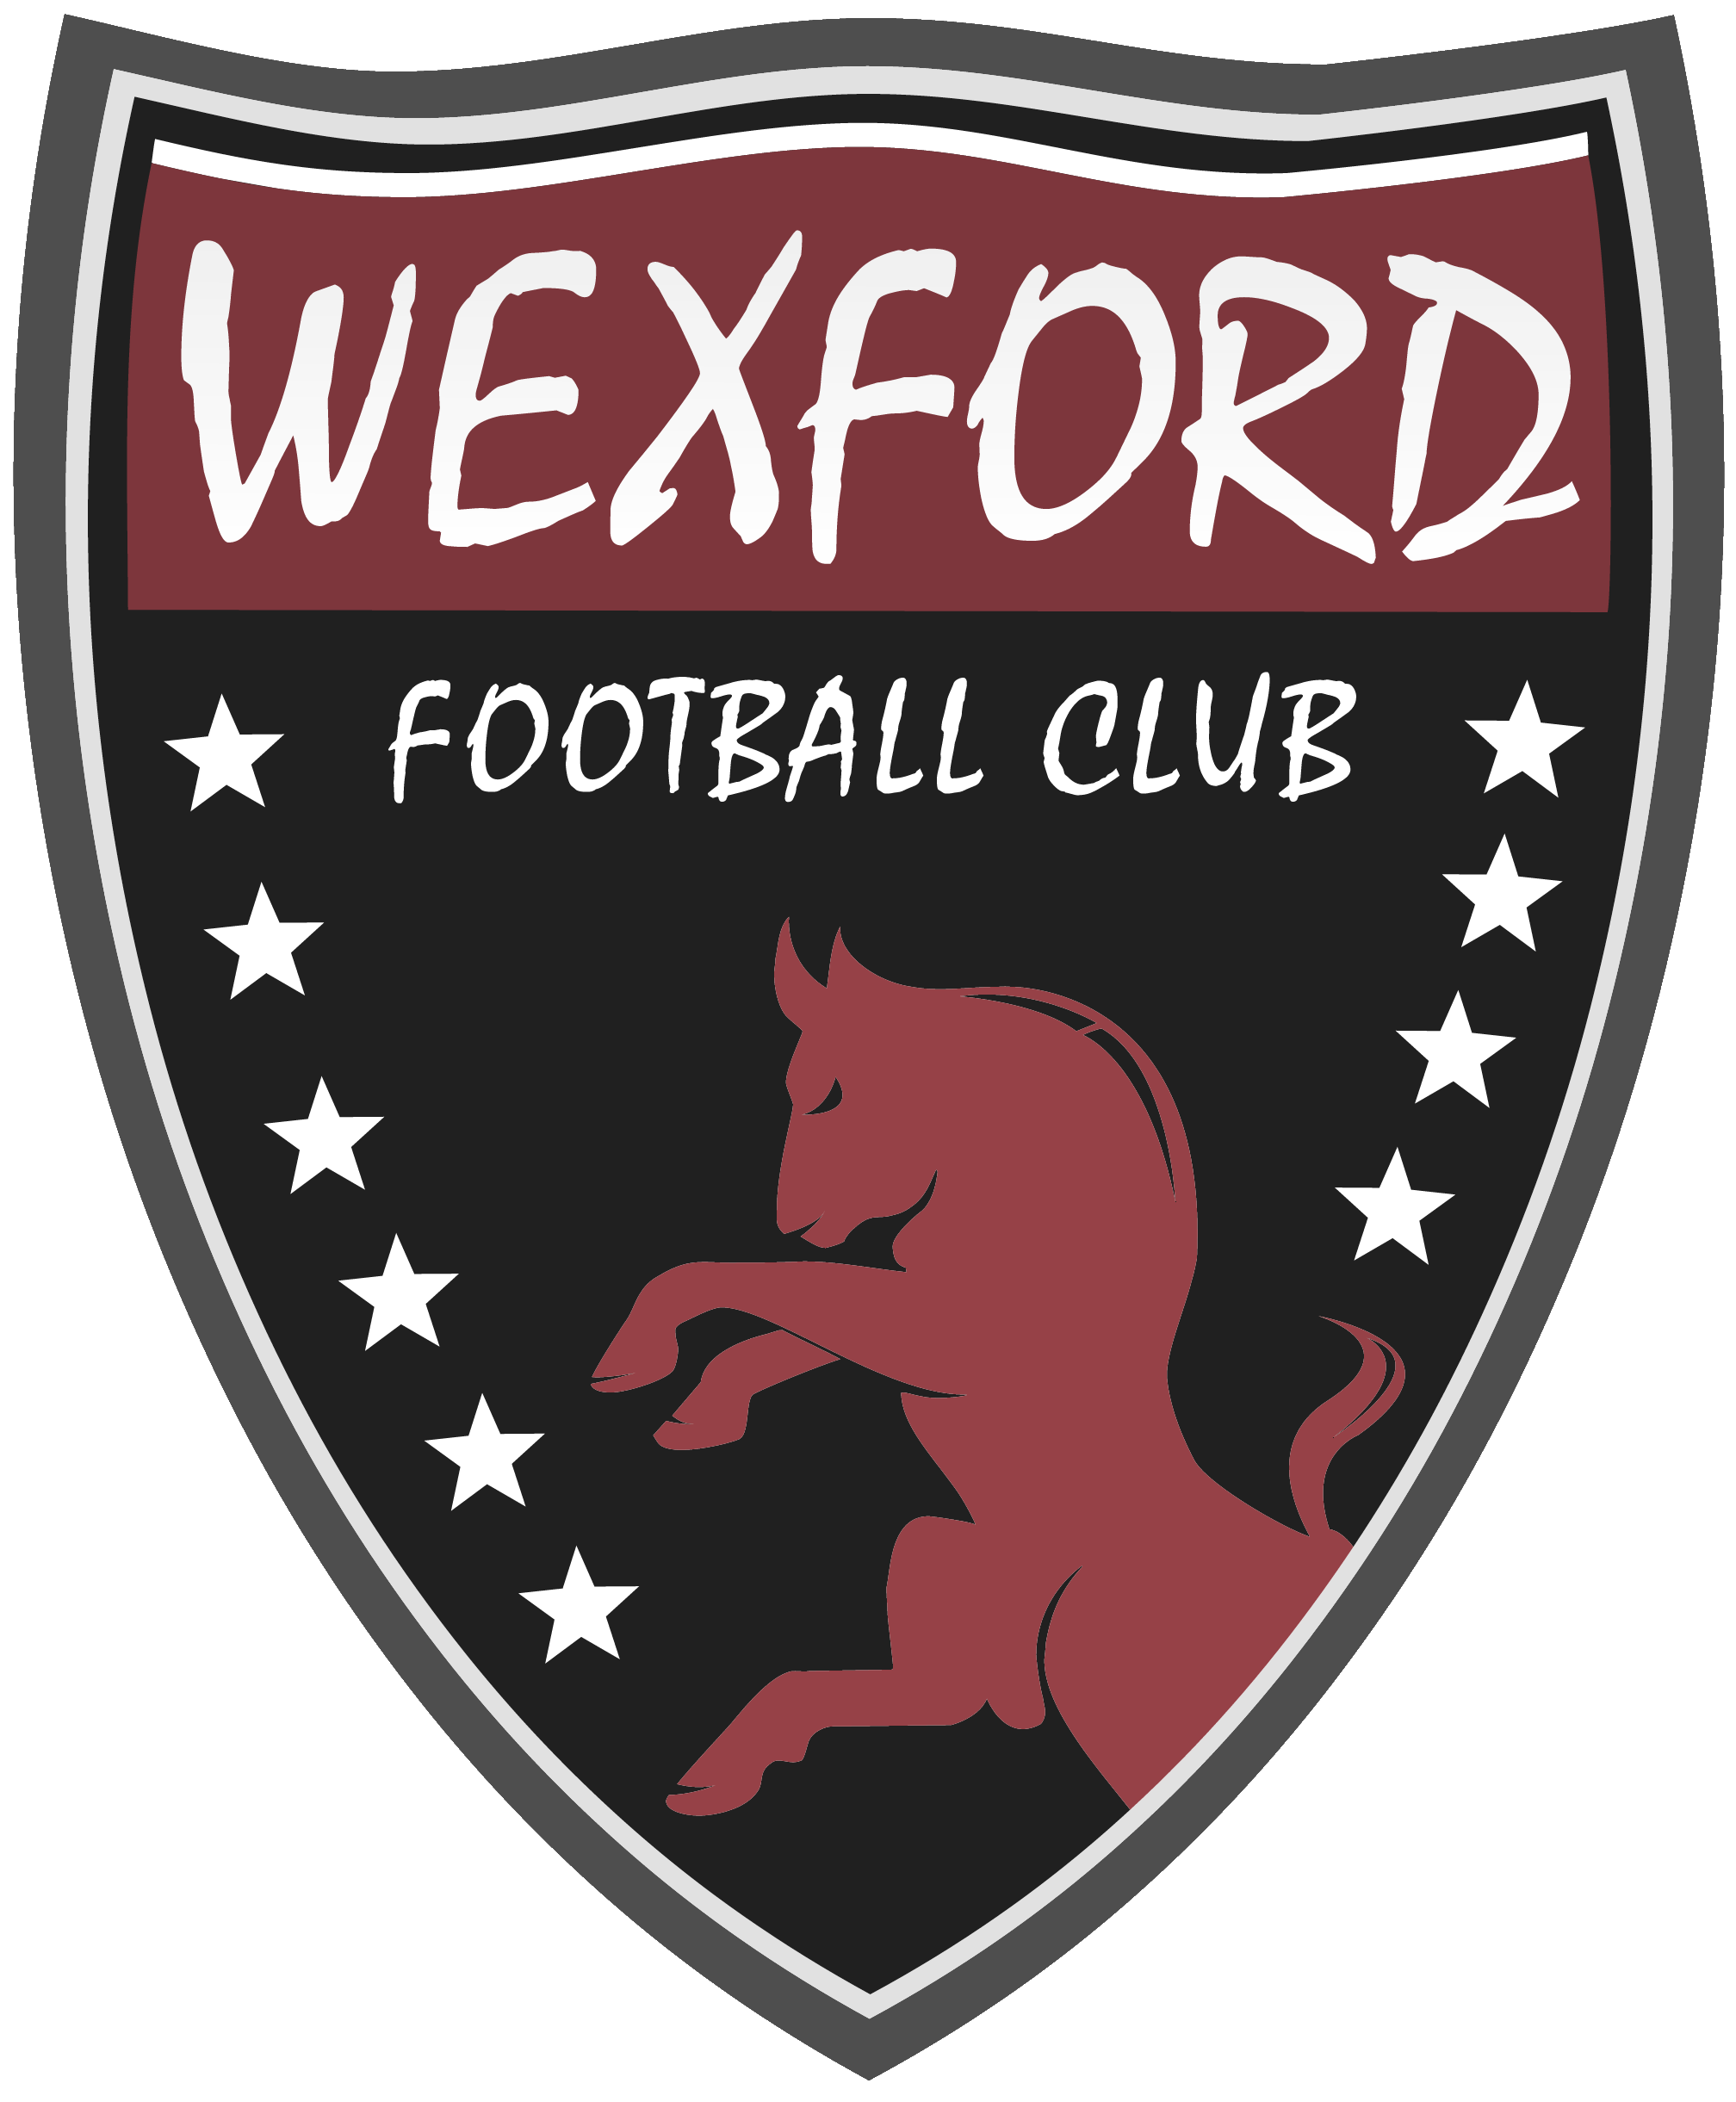 http://wexfordfc.ie/images/Wexford-FC-Crest.png